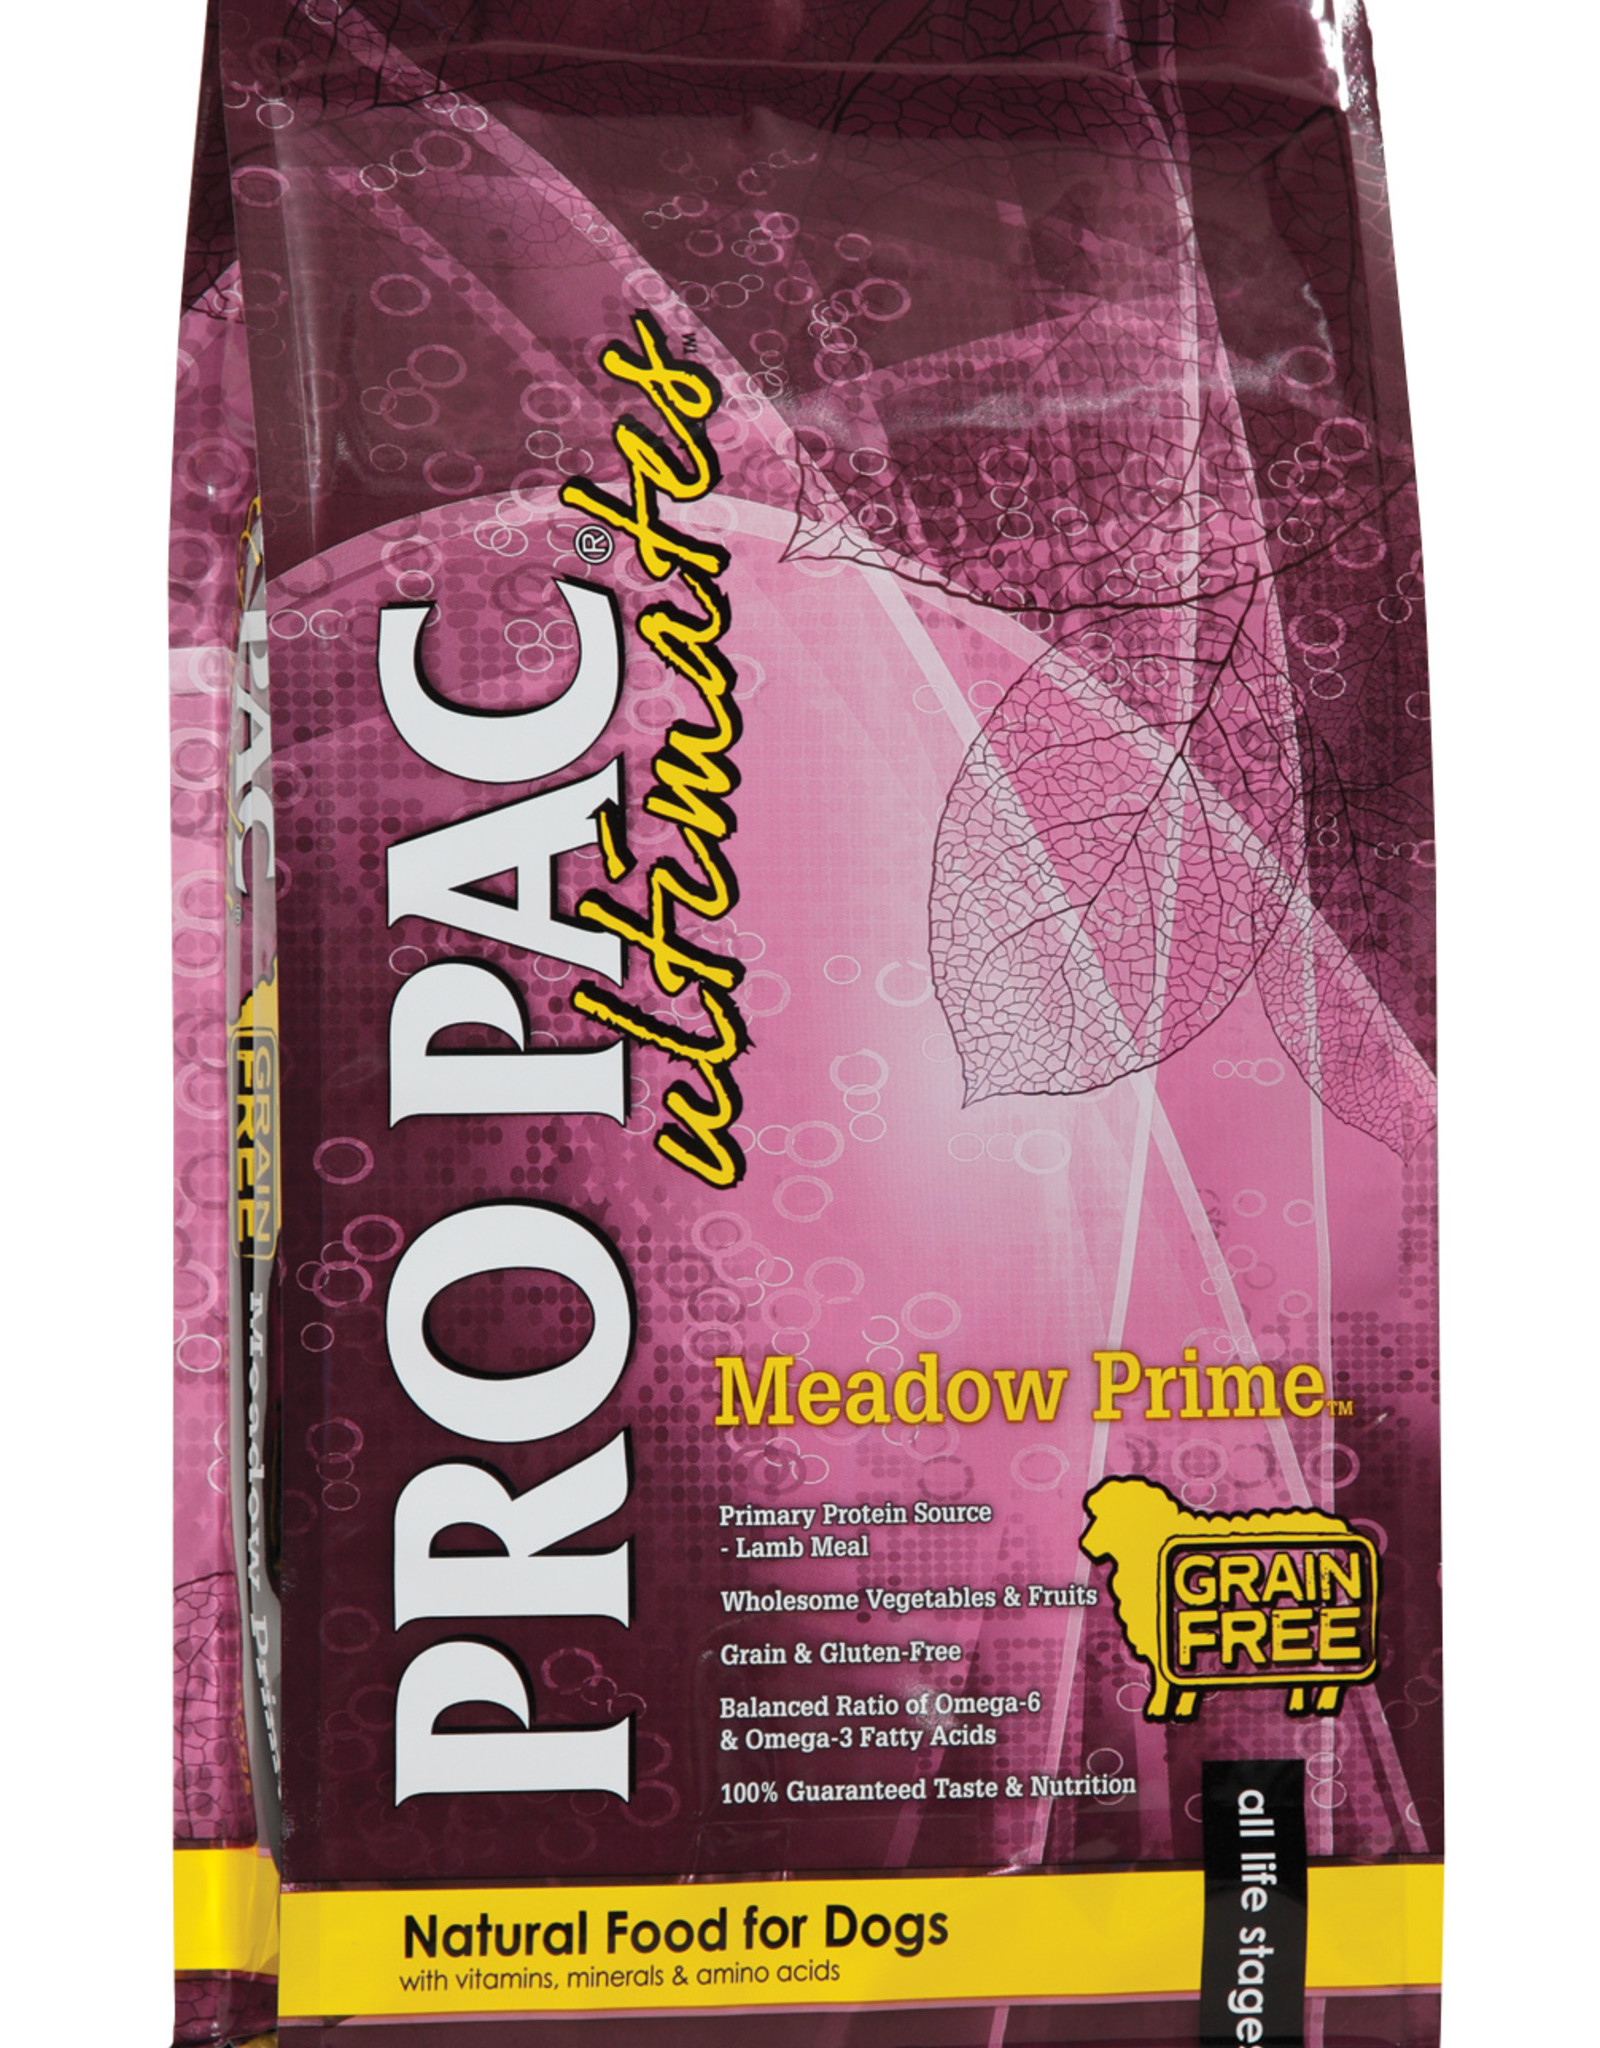 PRO PAC Ultimates PRO PAC Ultimates Dog Food Meadow Prime